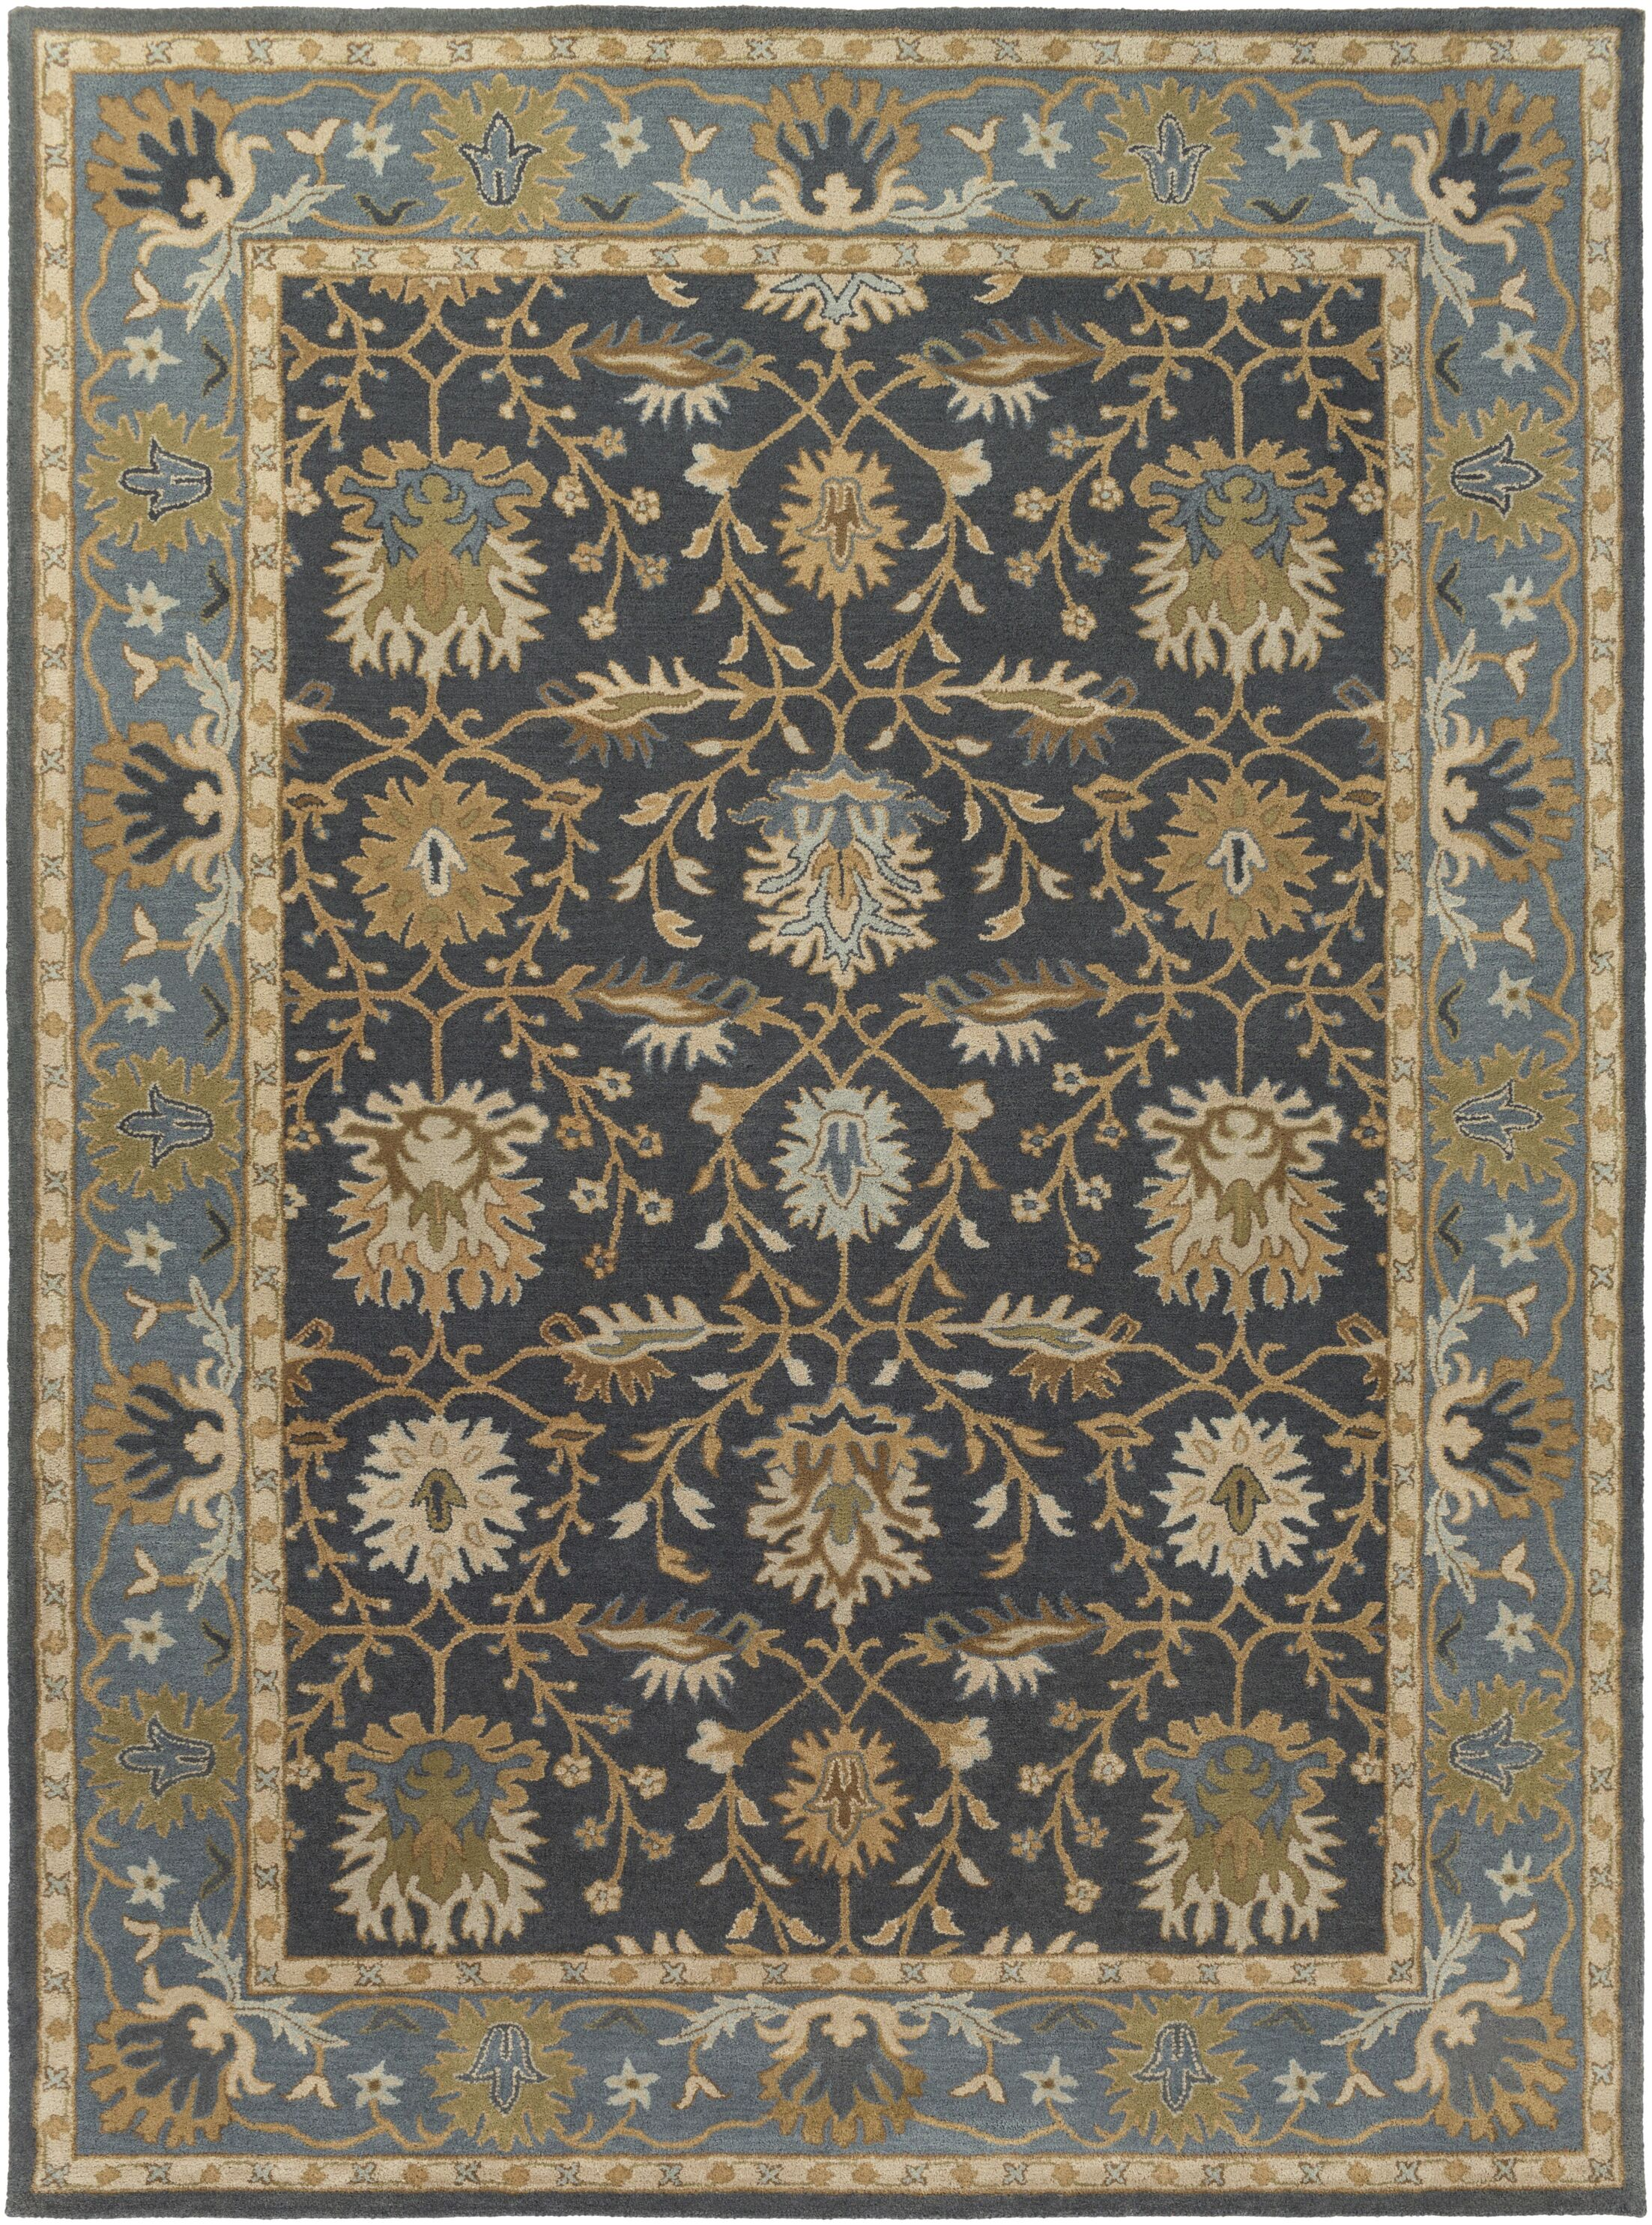 Dyer Avenue Hand Woven Wool Denim Area Rug Rug Size: Runner 2'3